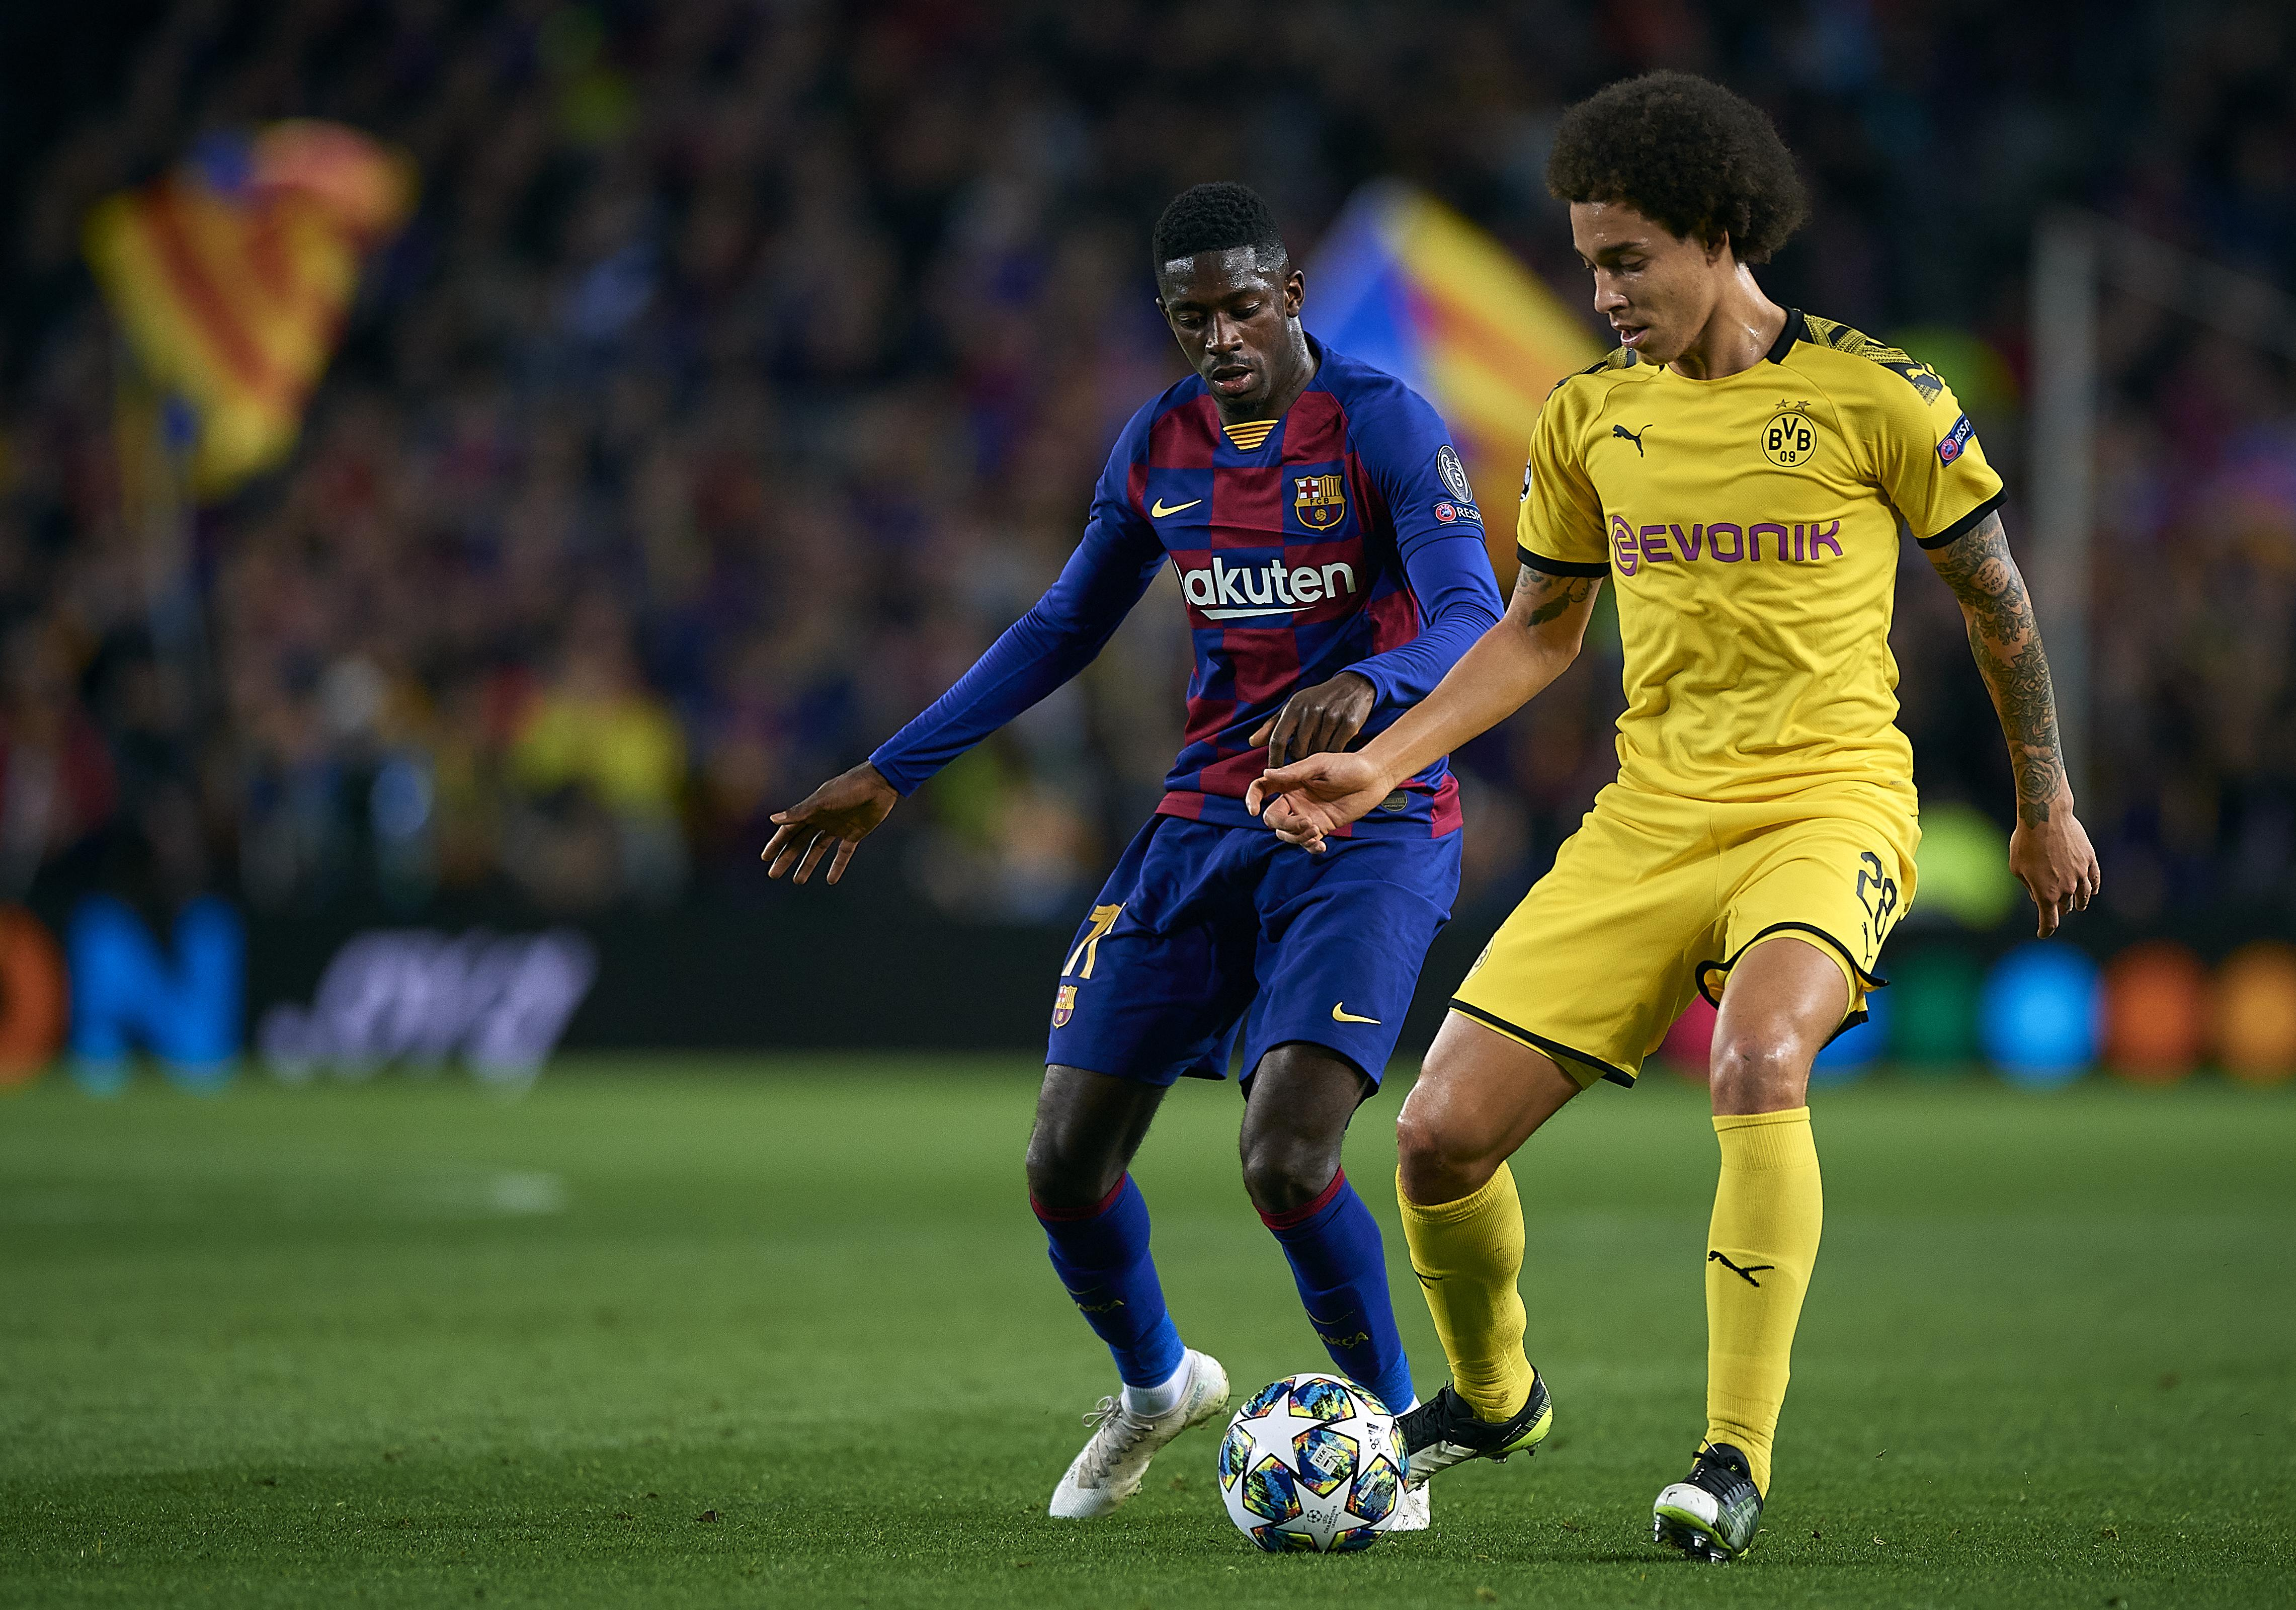 Ousmane Dembele (L) of Barcelona competes for the ball with Axel Witsel of Borussia Dortmund